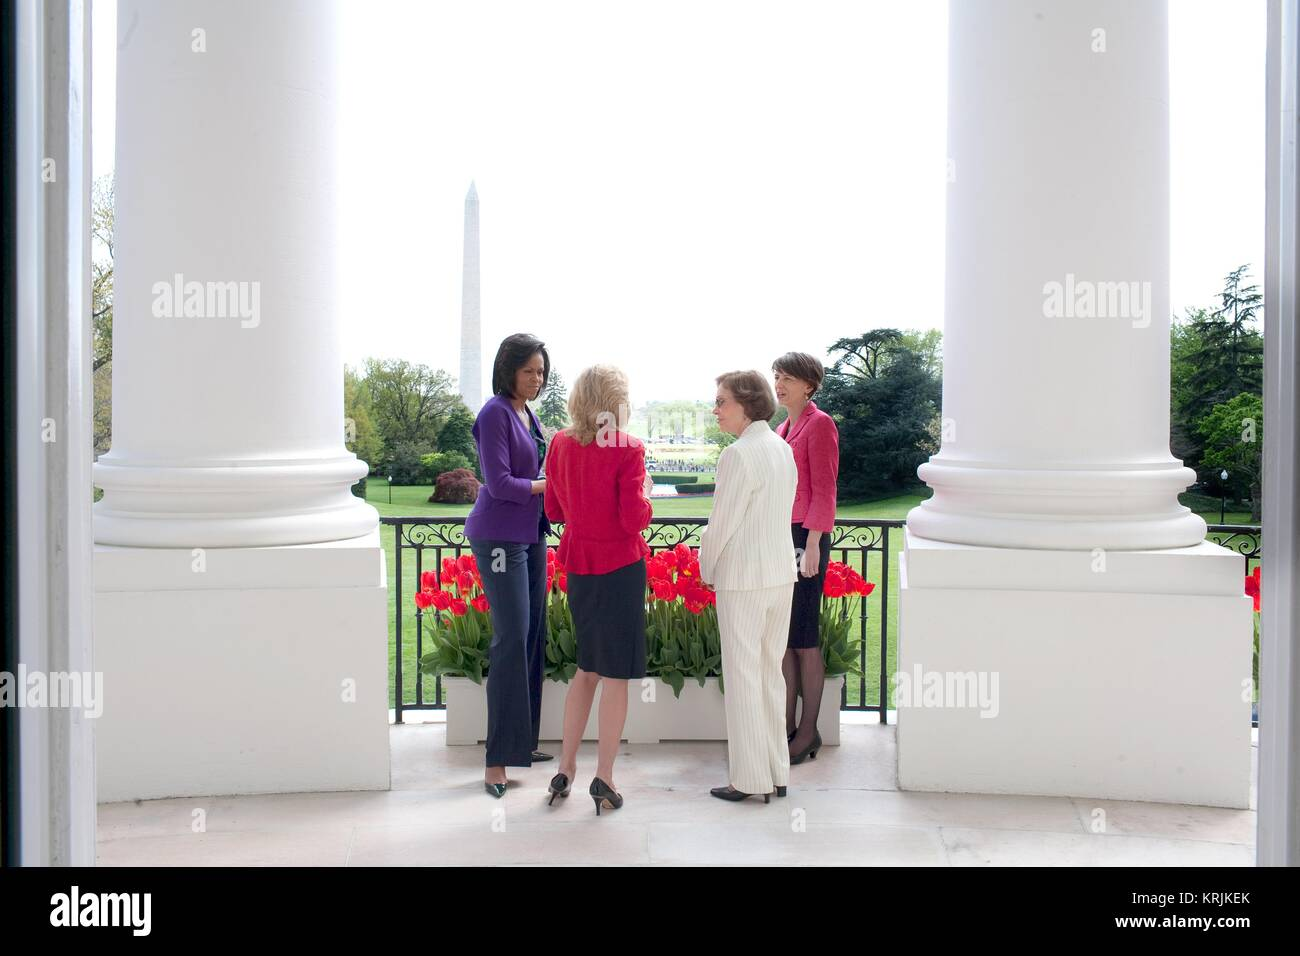 U.S. First Lady Michelle Obama (left) speaks with Second Lady Jill Biden, former First Lady Rosalynn Carter, and Stock Photo